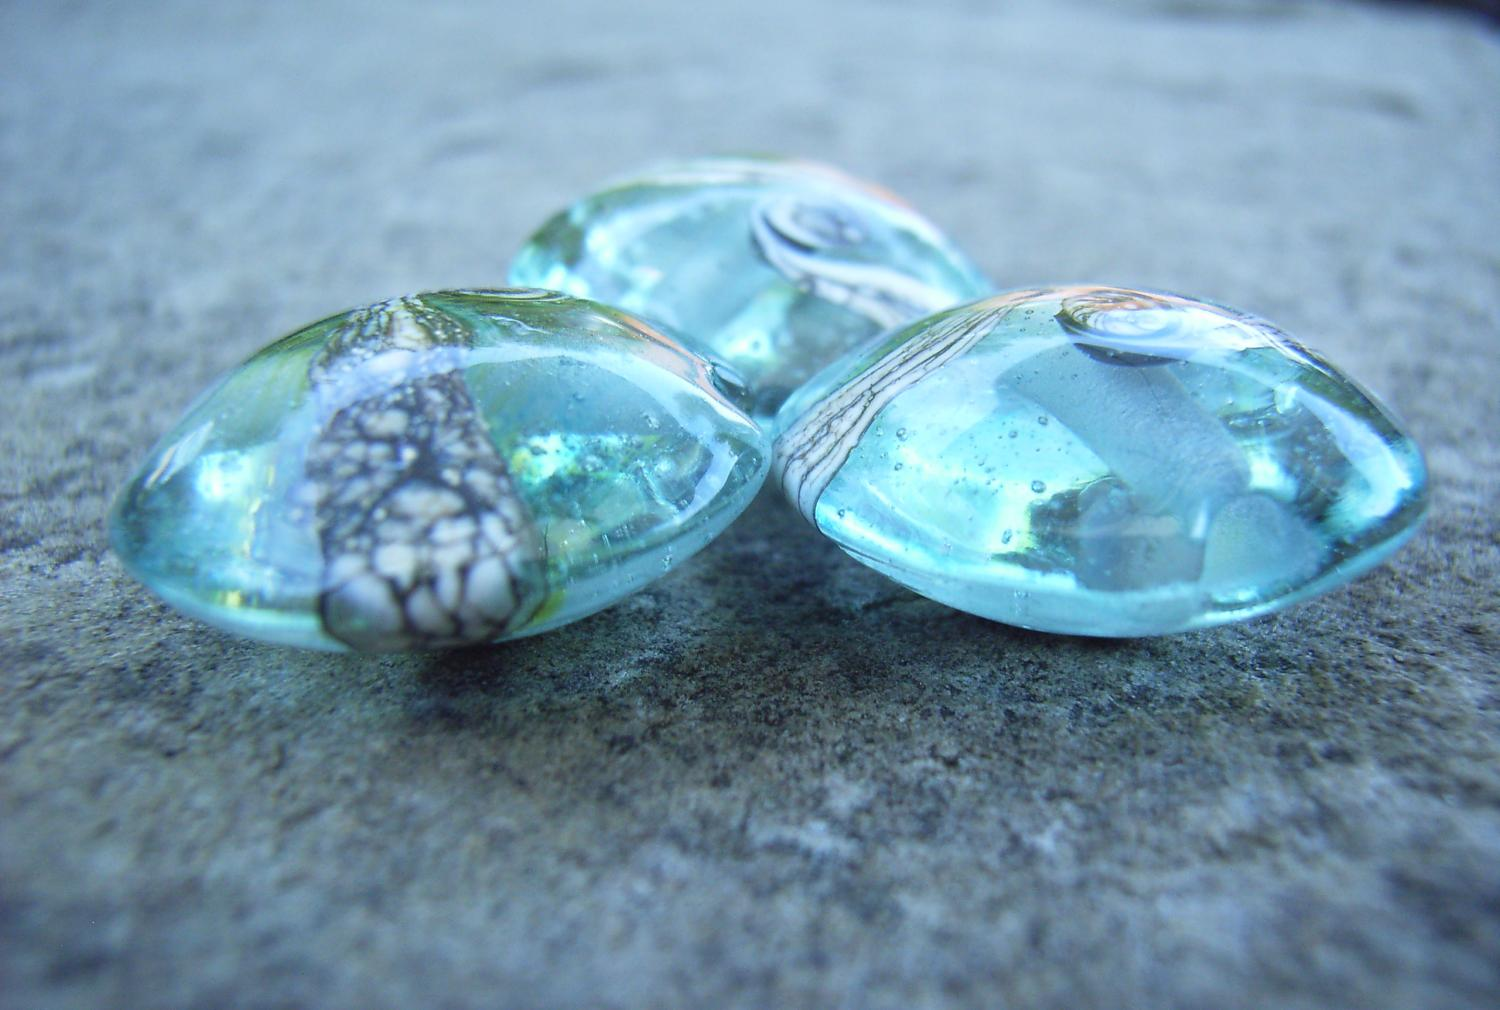 Silvered Ivory Swirl 18mm Aqua Lentil Handmade Artisan Glass Lampwork Beads - By the Bead, (Made to Order) d